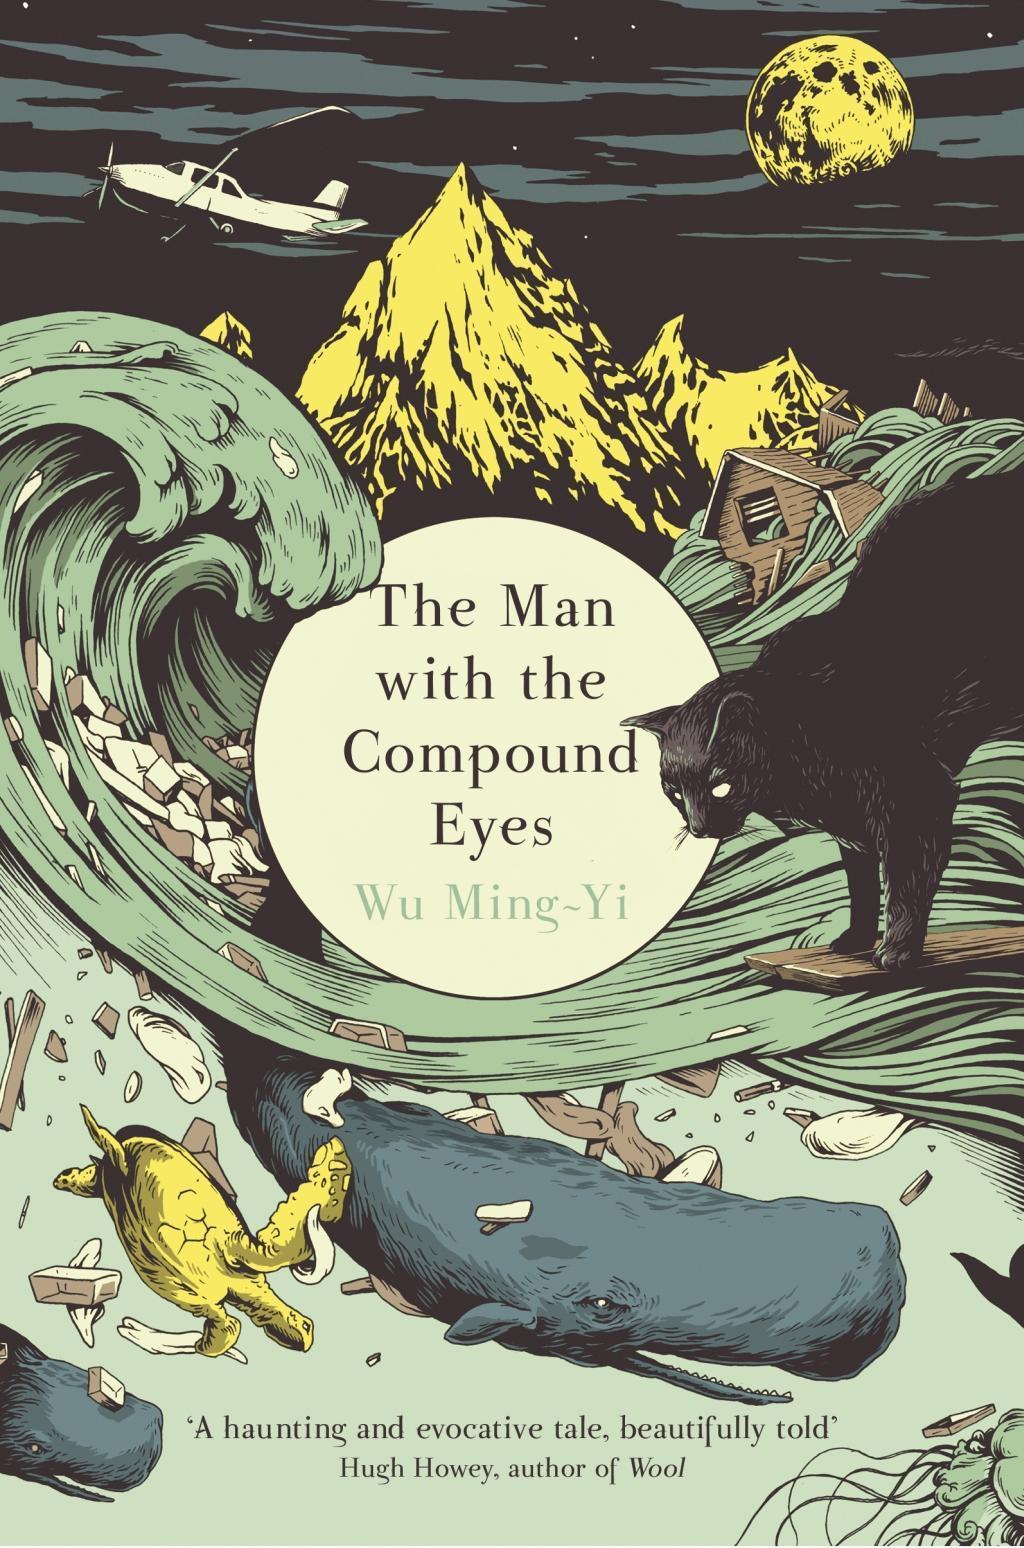 The Man with the Compound Eyes